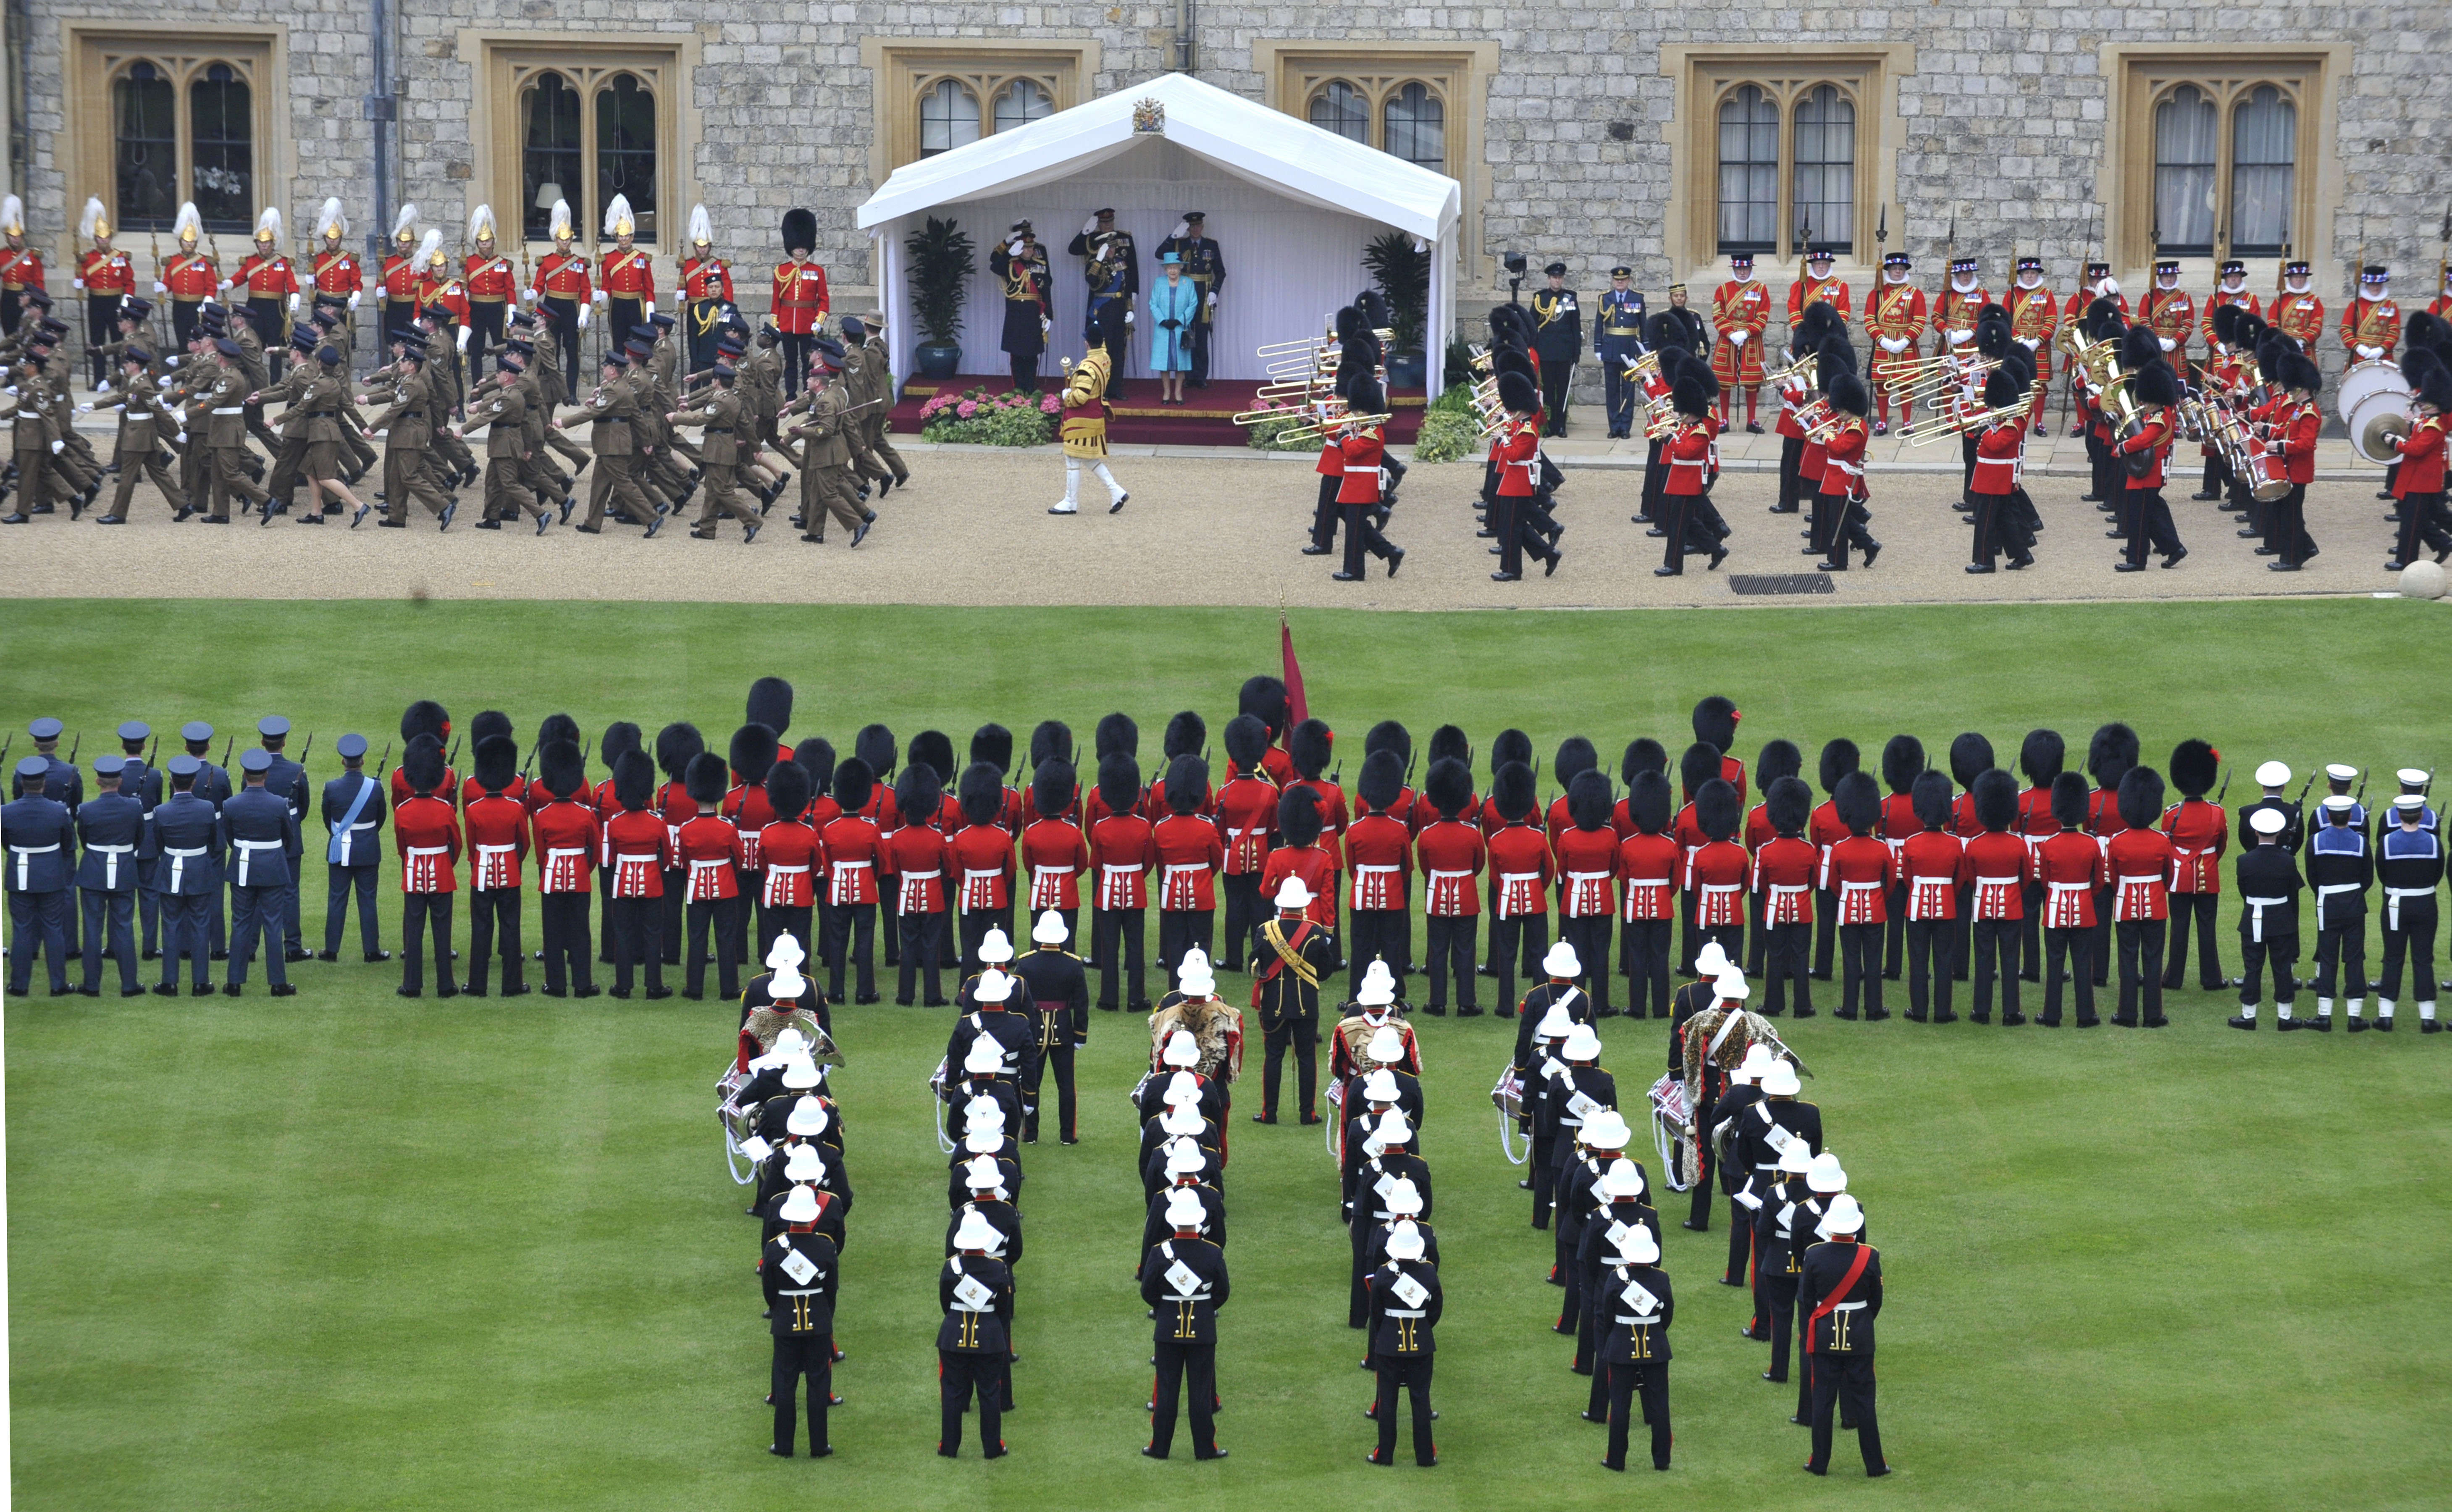 filediamond jubilee parade and muster british army pass in reviewjpg - Muster